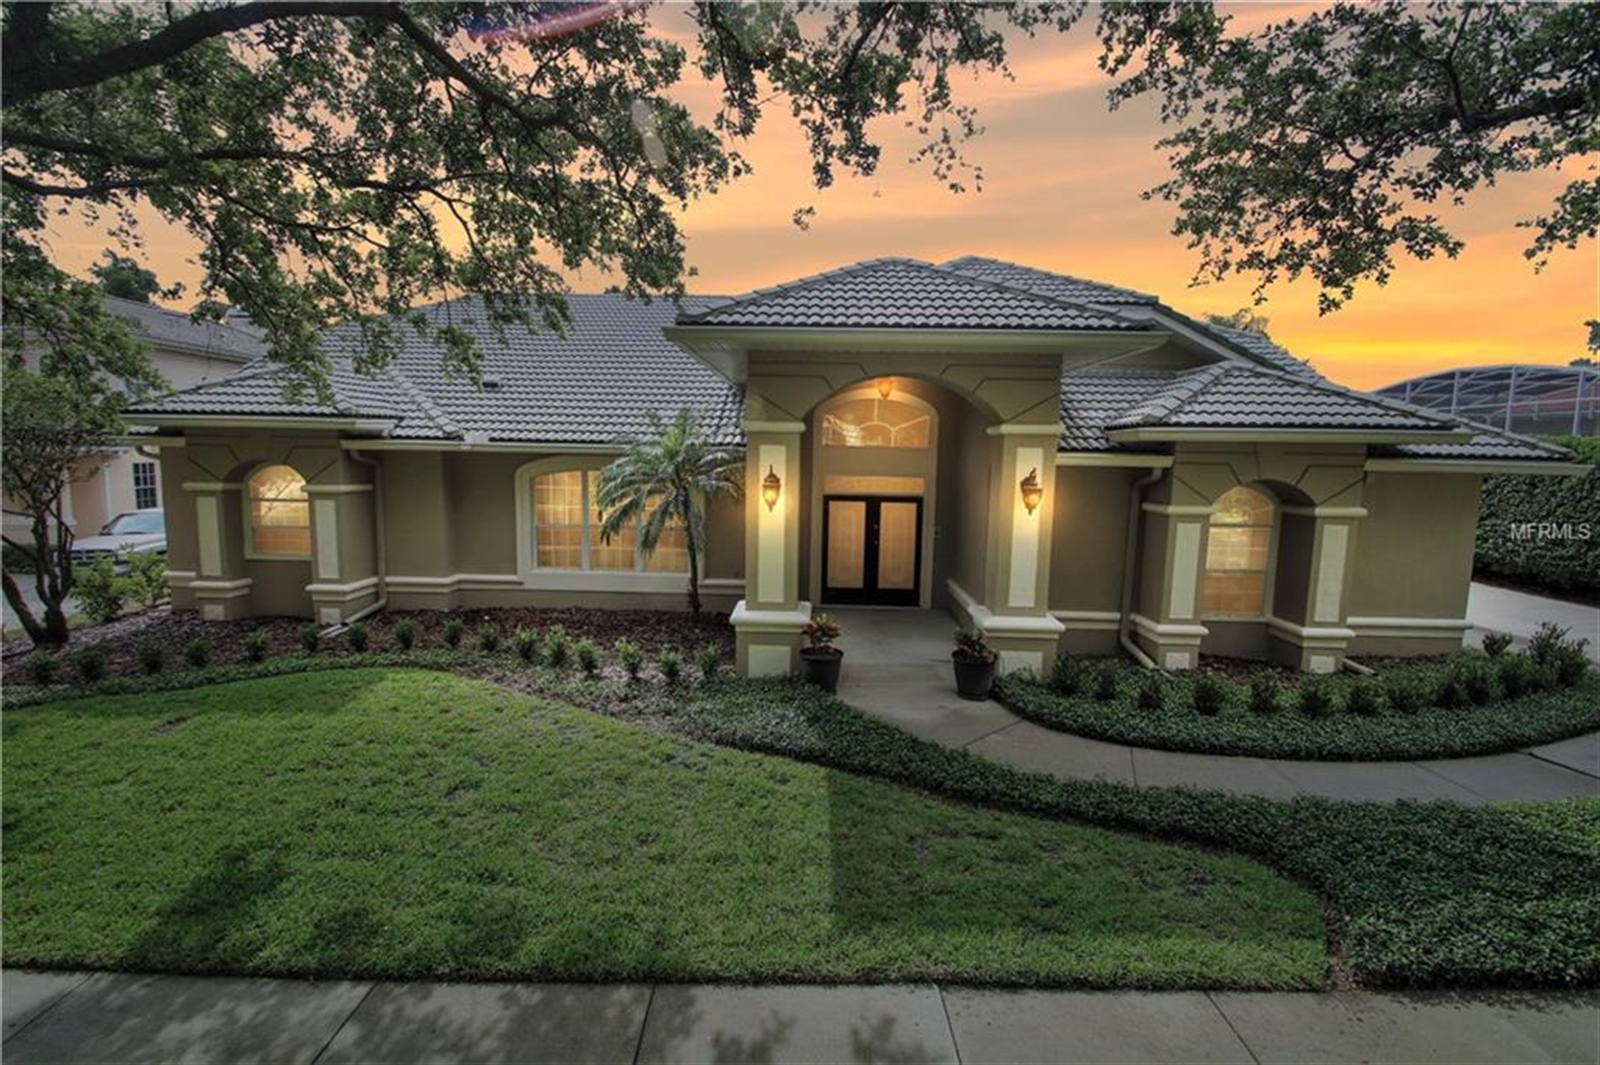 Real Estate Photography - 607 Cricklewood Ter, Lake Mary, FL, 32746 - Location 2